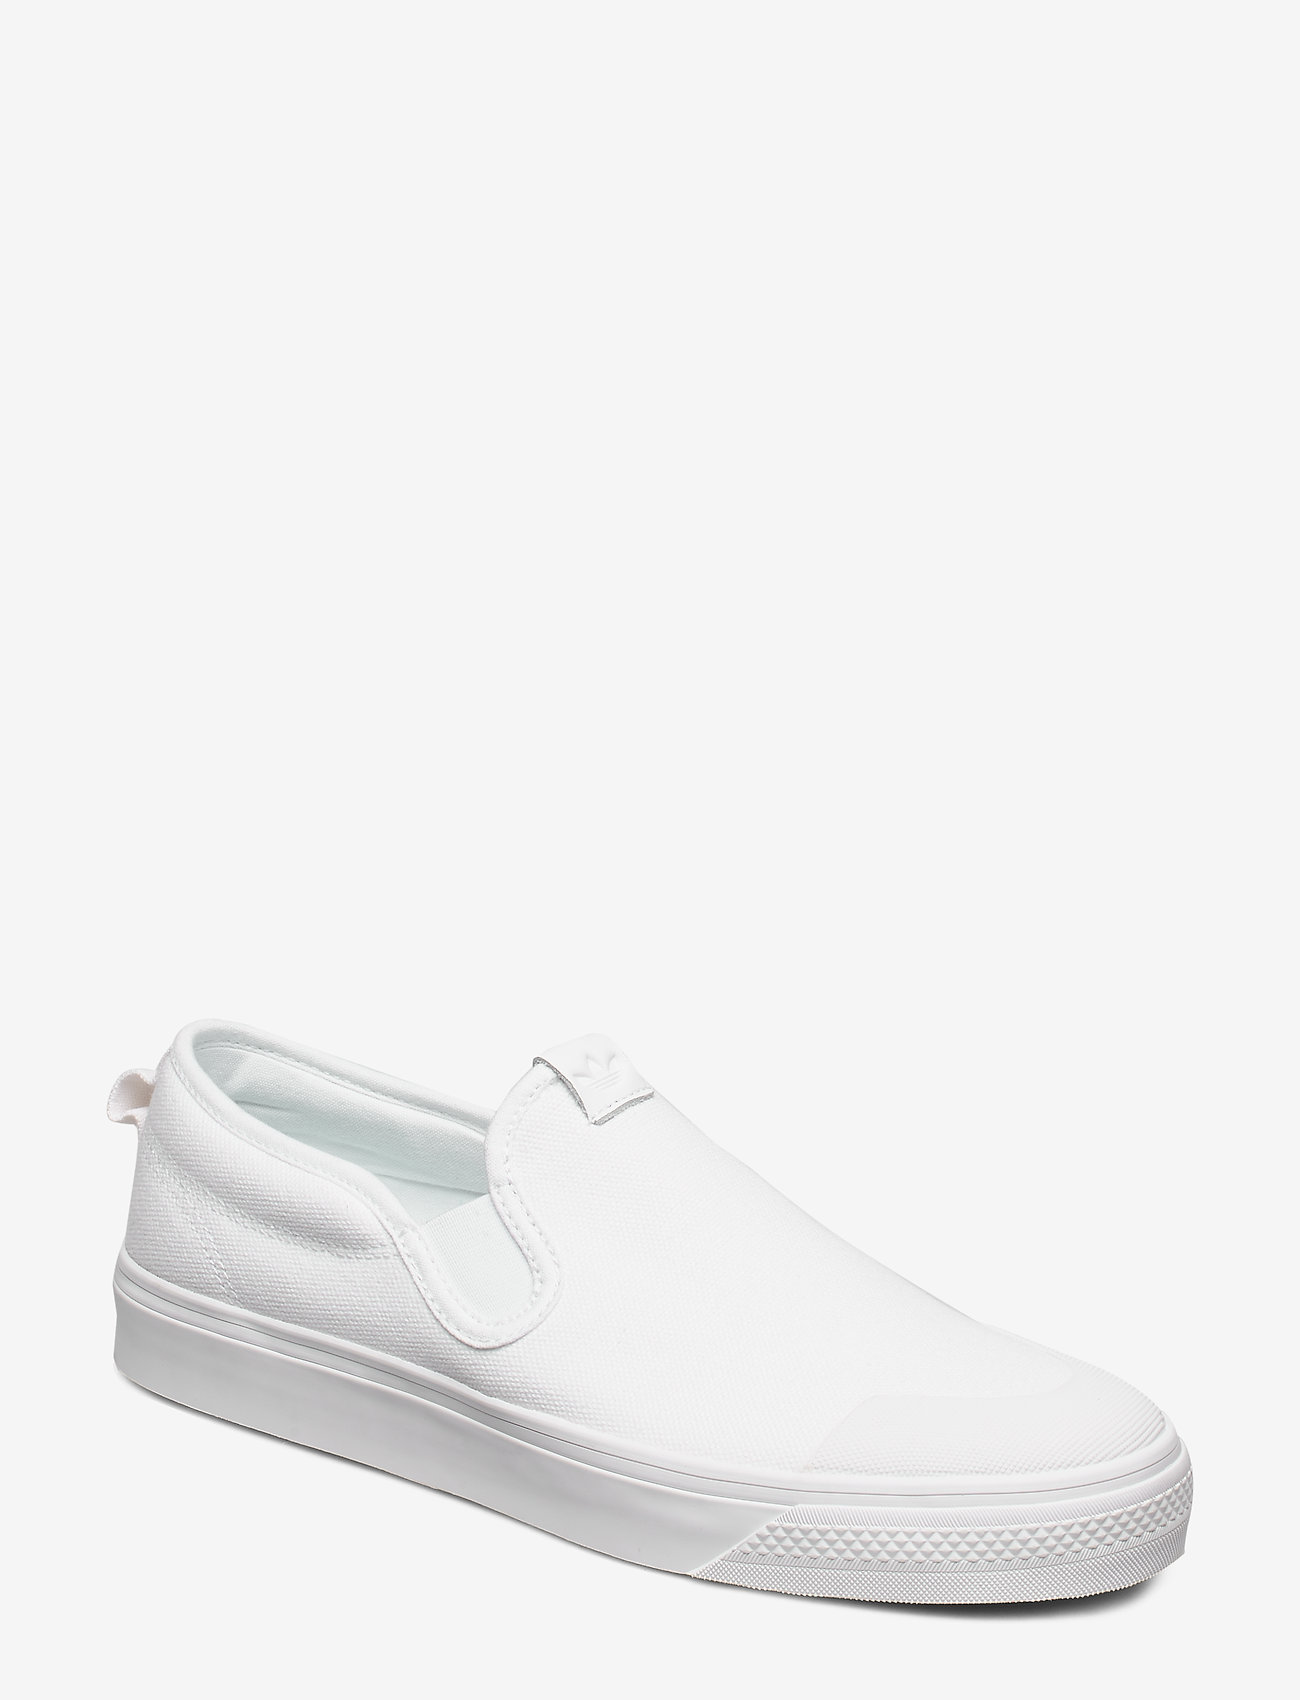 adidas Originals - NIZZA SLIP ON - baskets slip-ons - ftwwht/ftwwht/ftwwht - 0